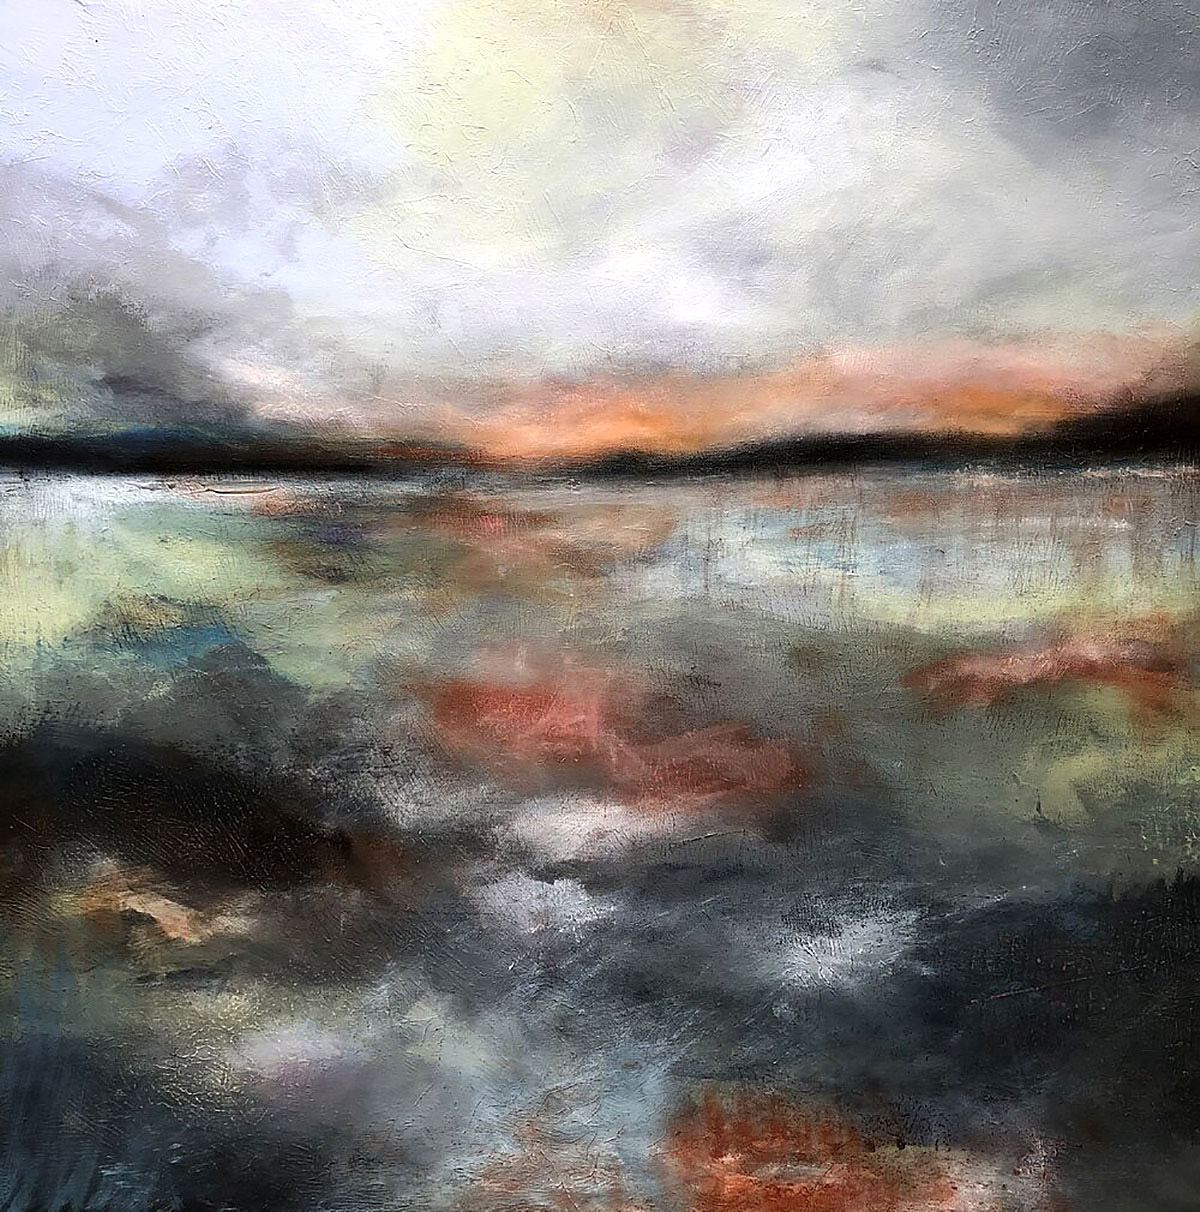 Kirstin Heggie, 'Stormy Skies', acrylic and oil bar on board